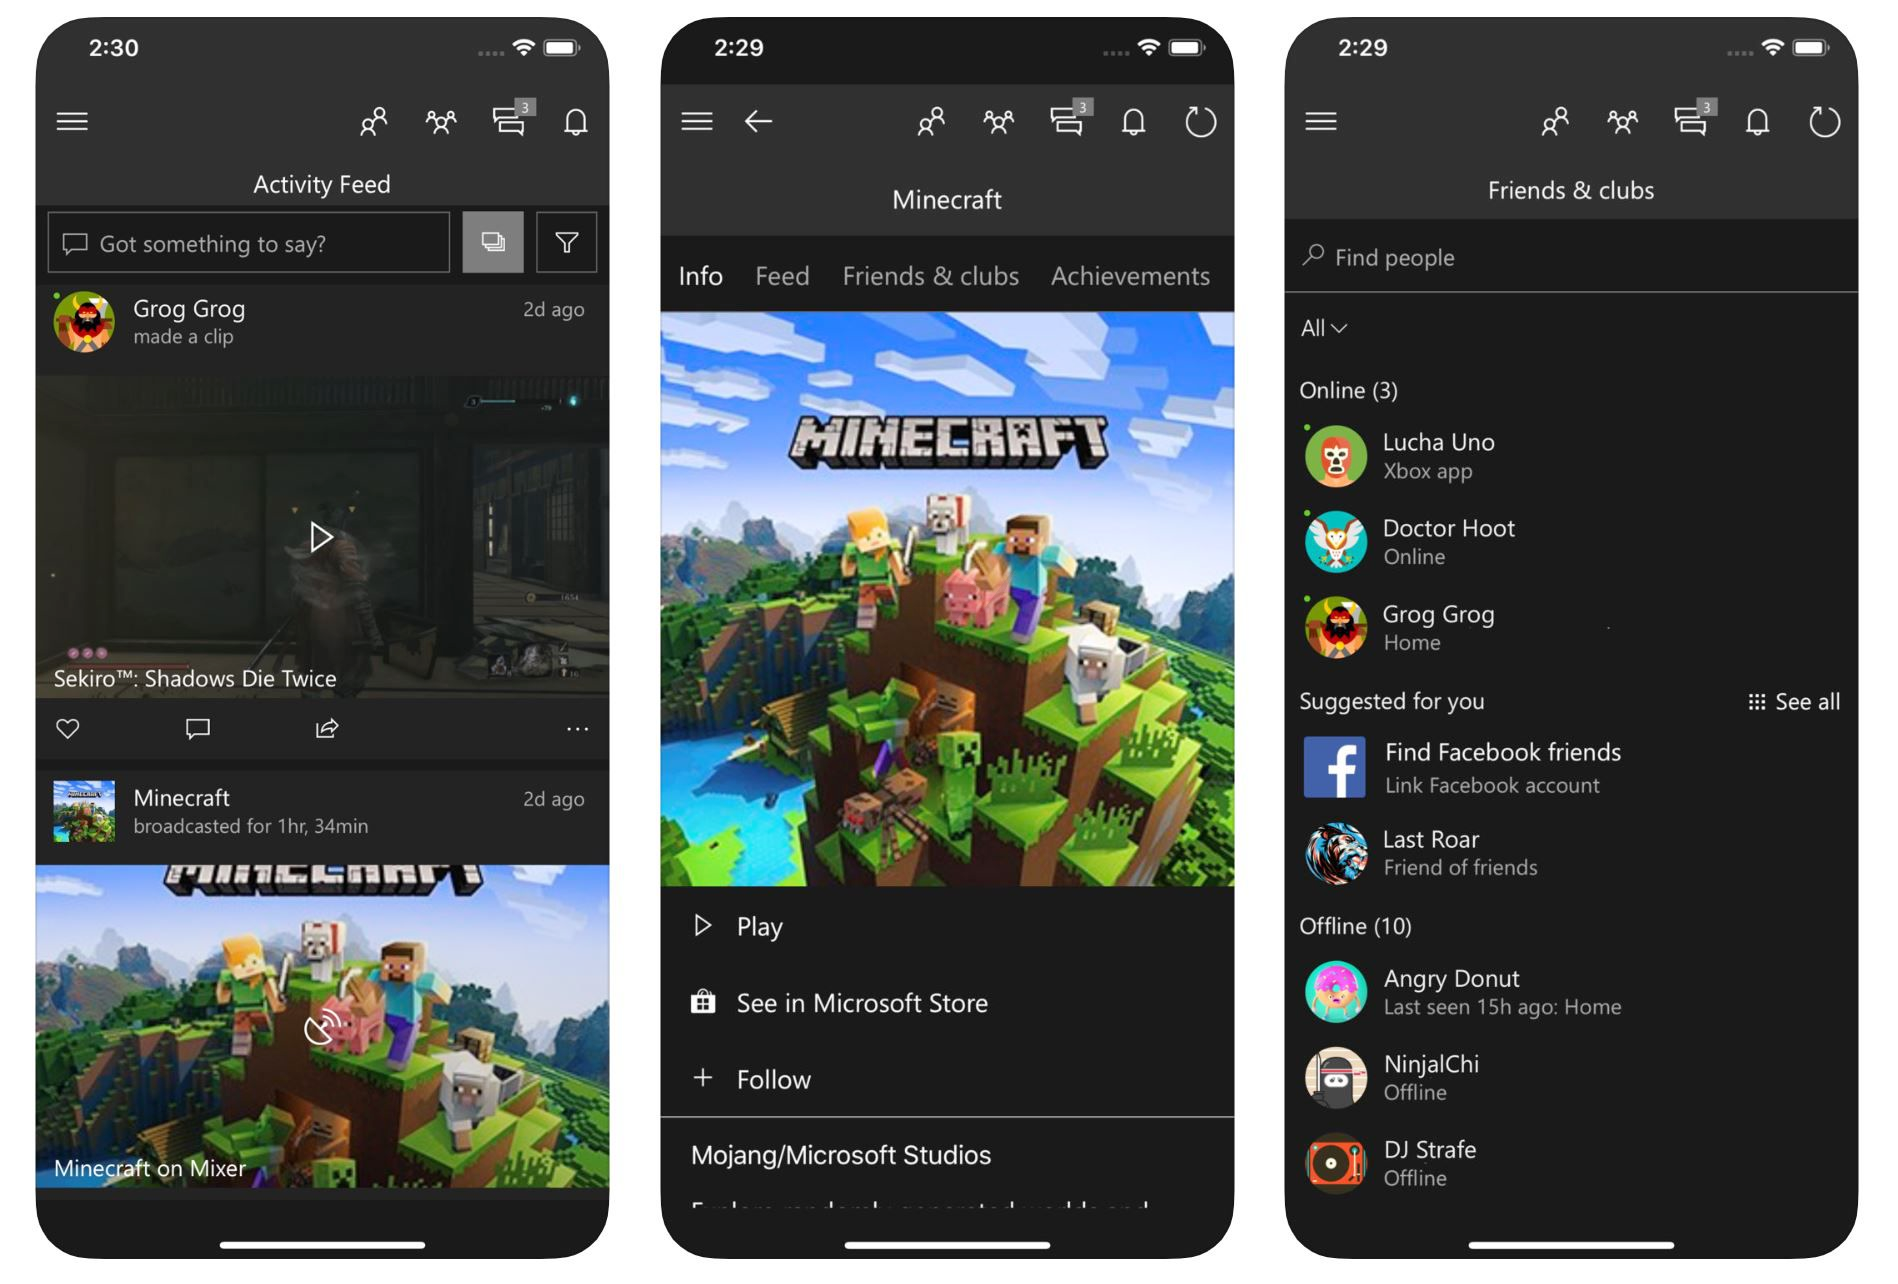 Xbox App for mobile devices you update with voice chat and